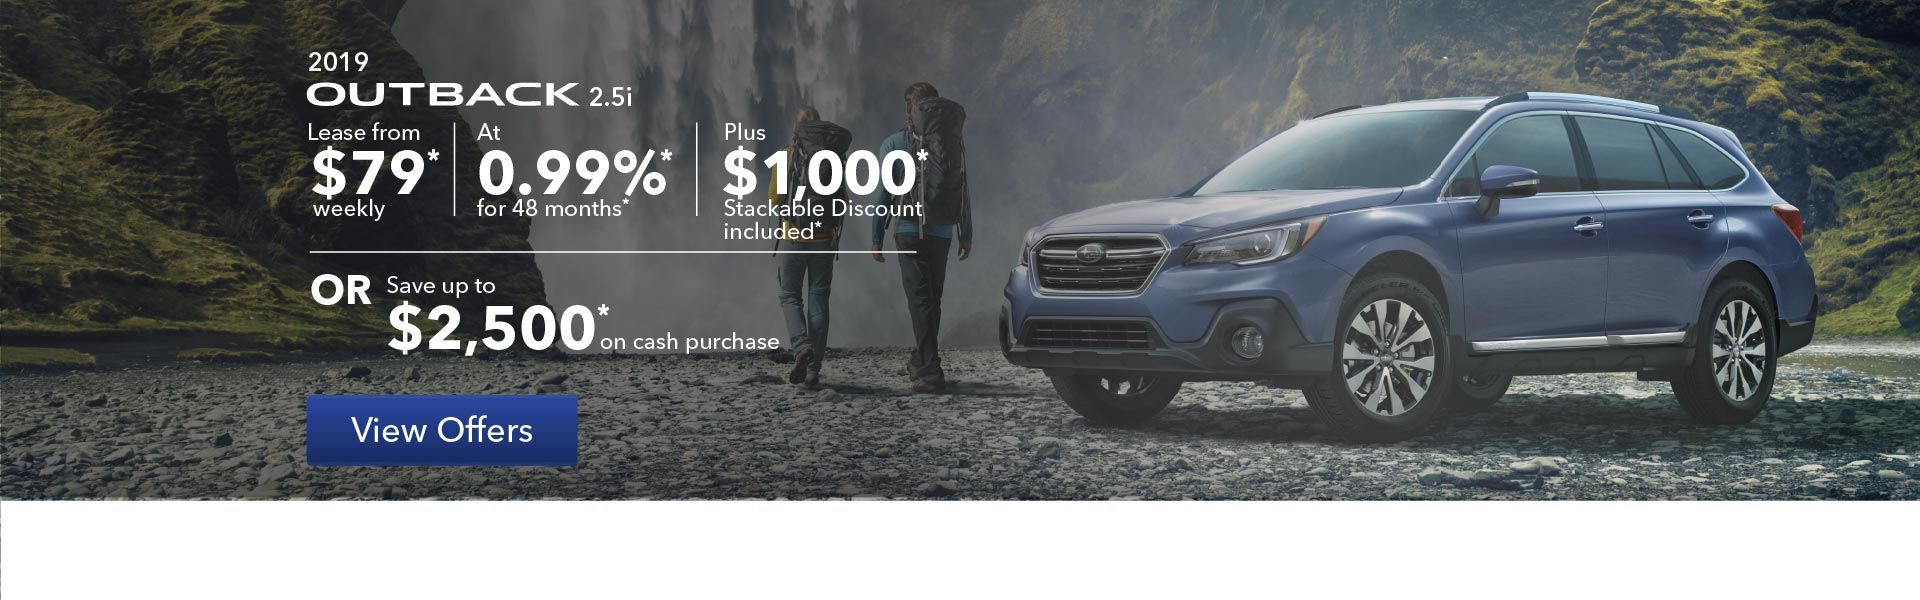 2019 Outback Promotion